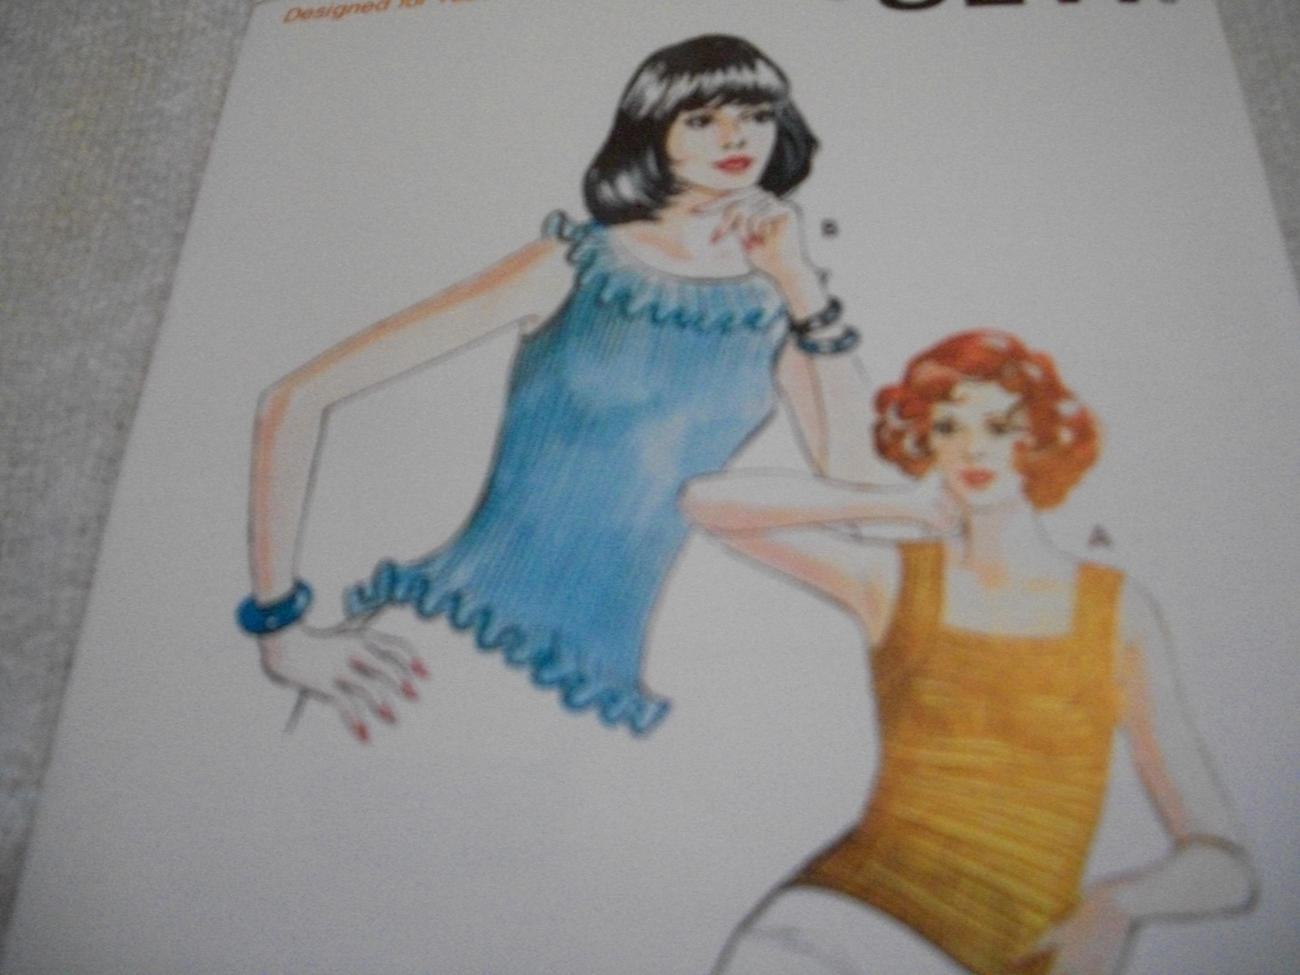 Primary image for Misses' Sleeveless Ribbing Tops Pattern Kwik Sew 608